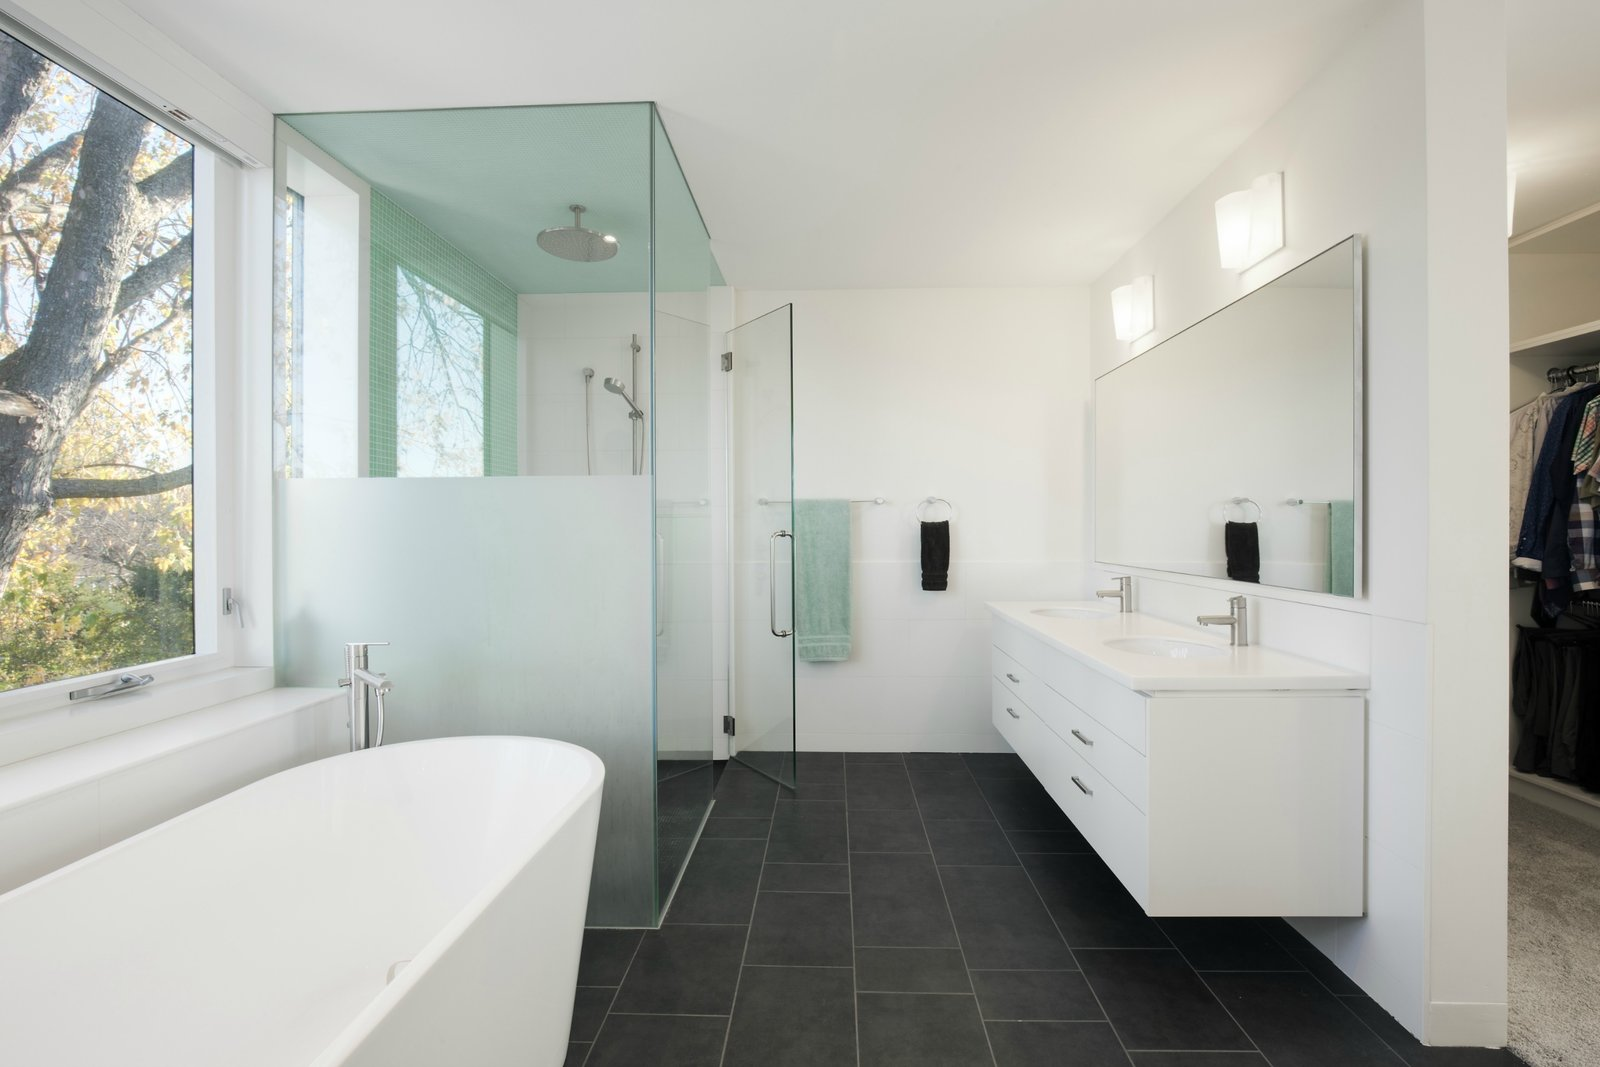 A Rubi bathtub by Ramacieri Soligo was installed beside a shower with Aquabrass finishes. Stone Tile International supplied the Amore porcelain tiles, in graphite black, that spread across the floor.  Art Moderne by Kelly Dawson